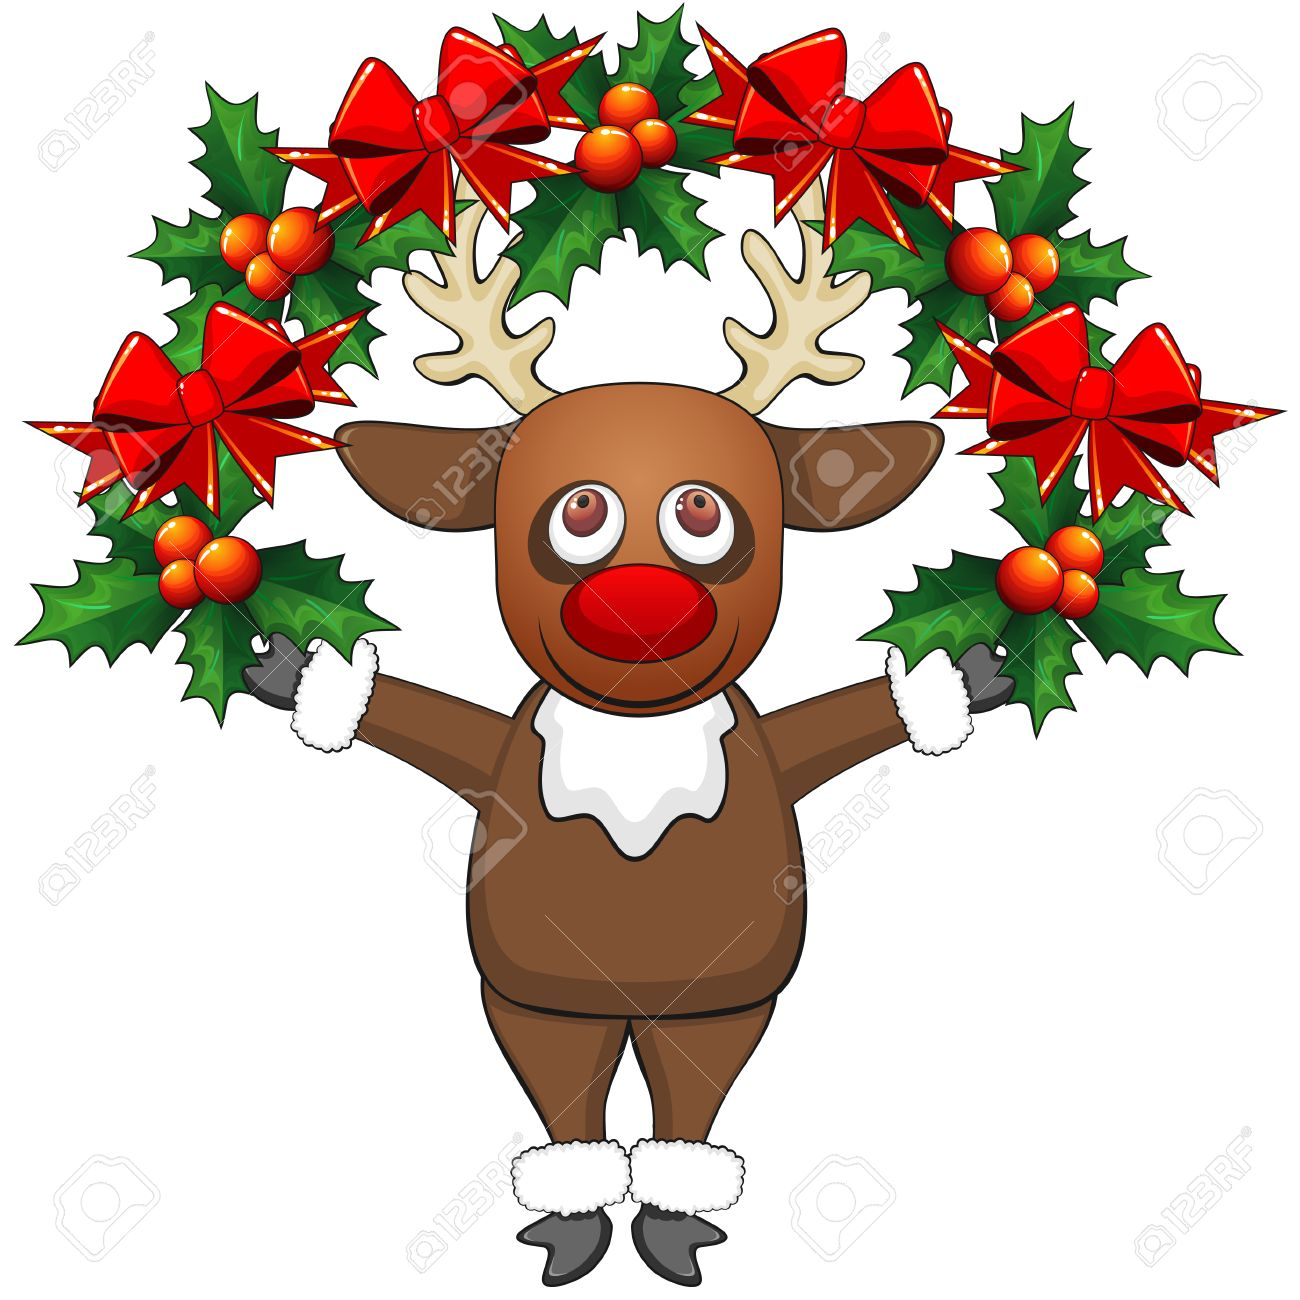 Cartoon Reindeer Standing With Christmas Garland With Bows